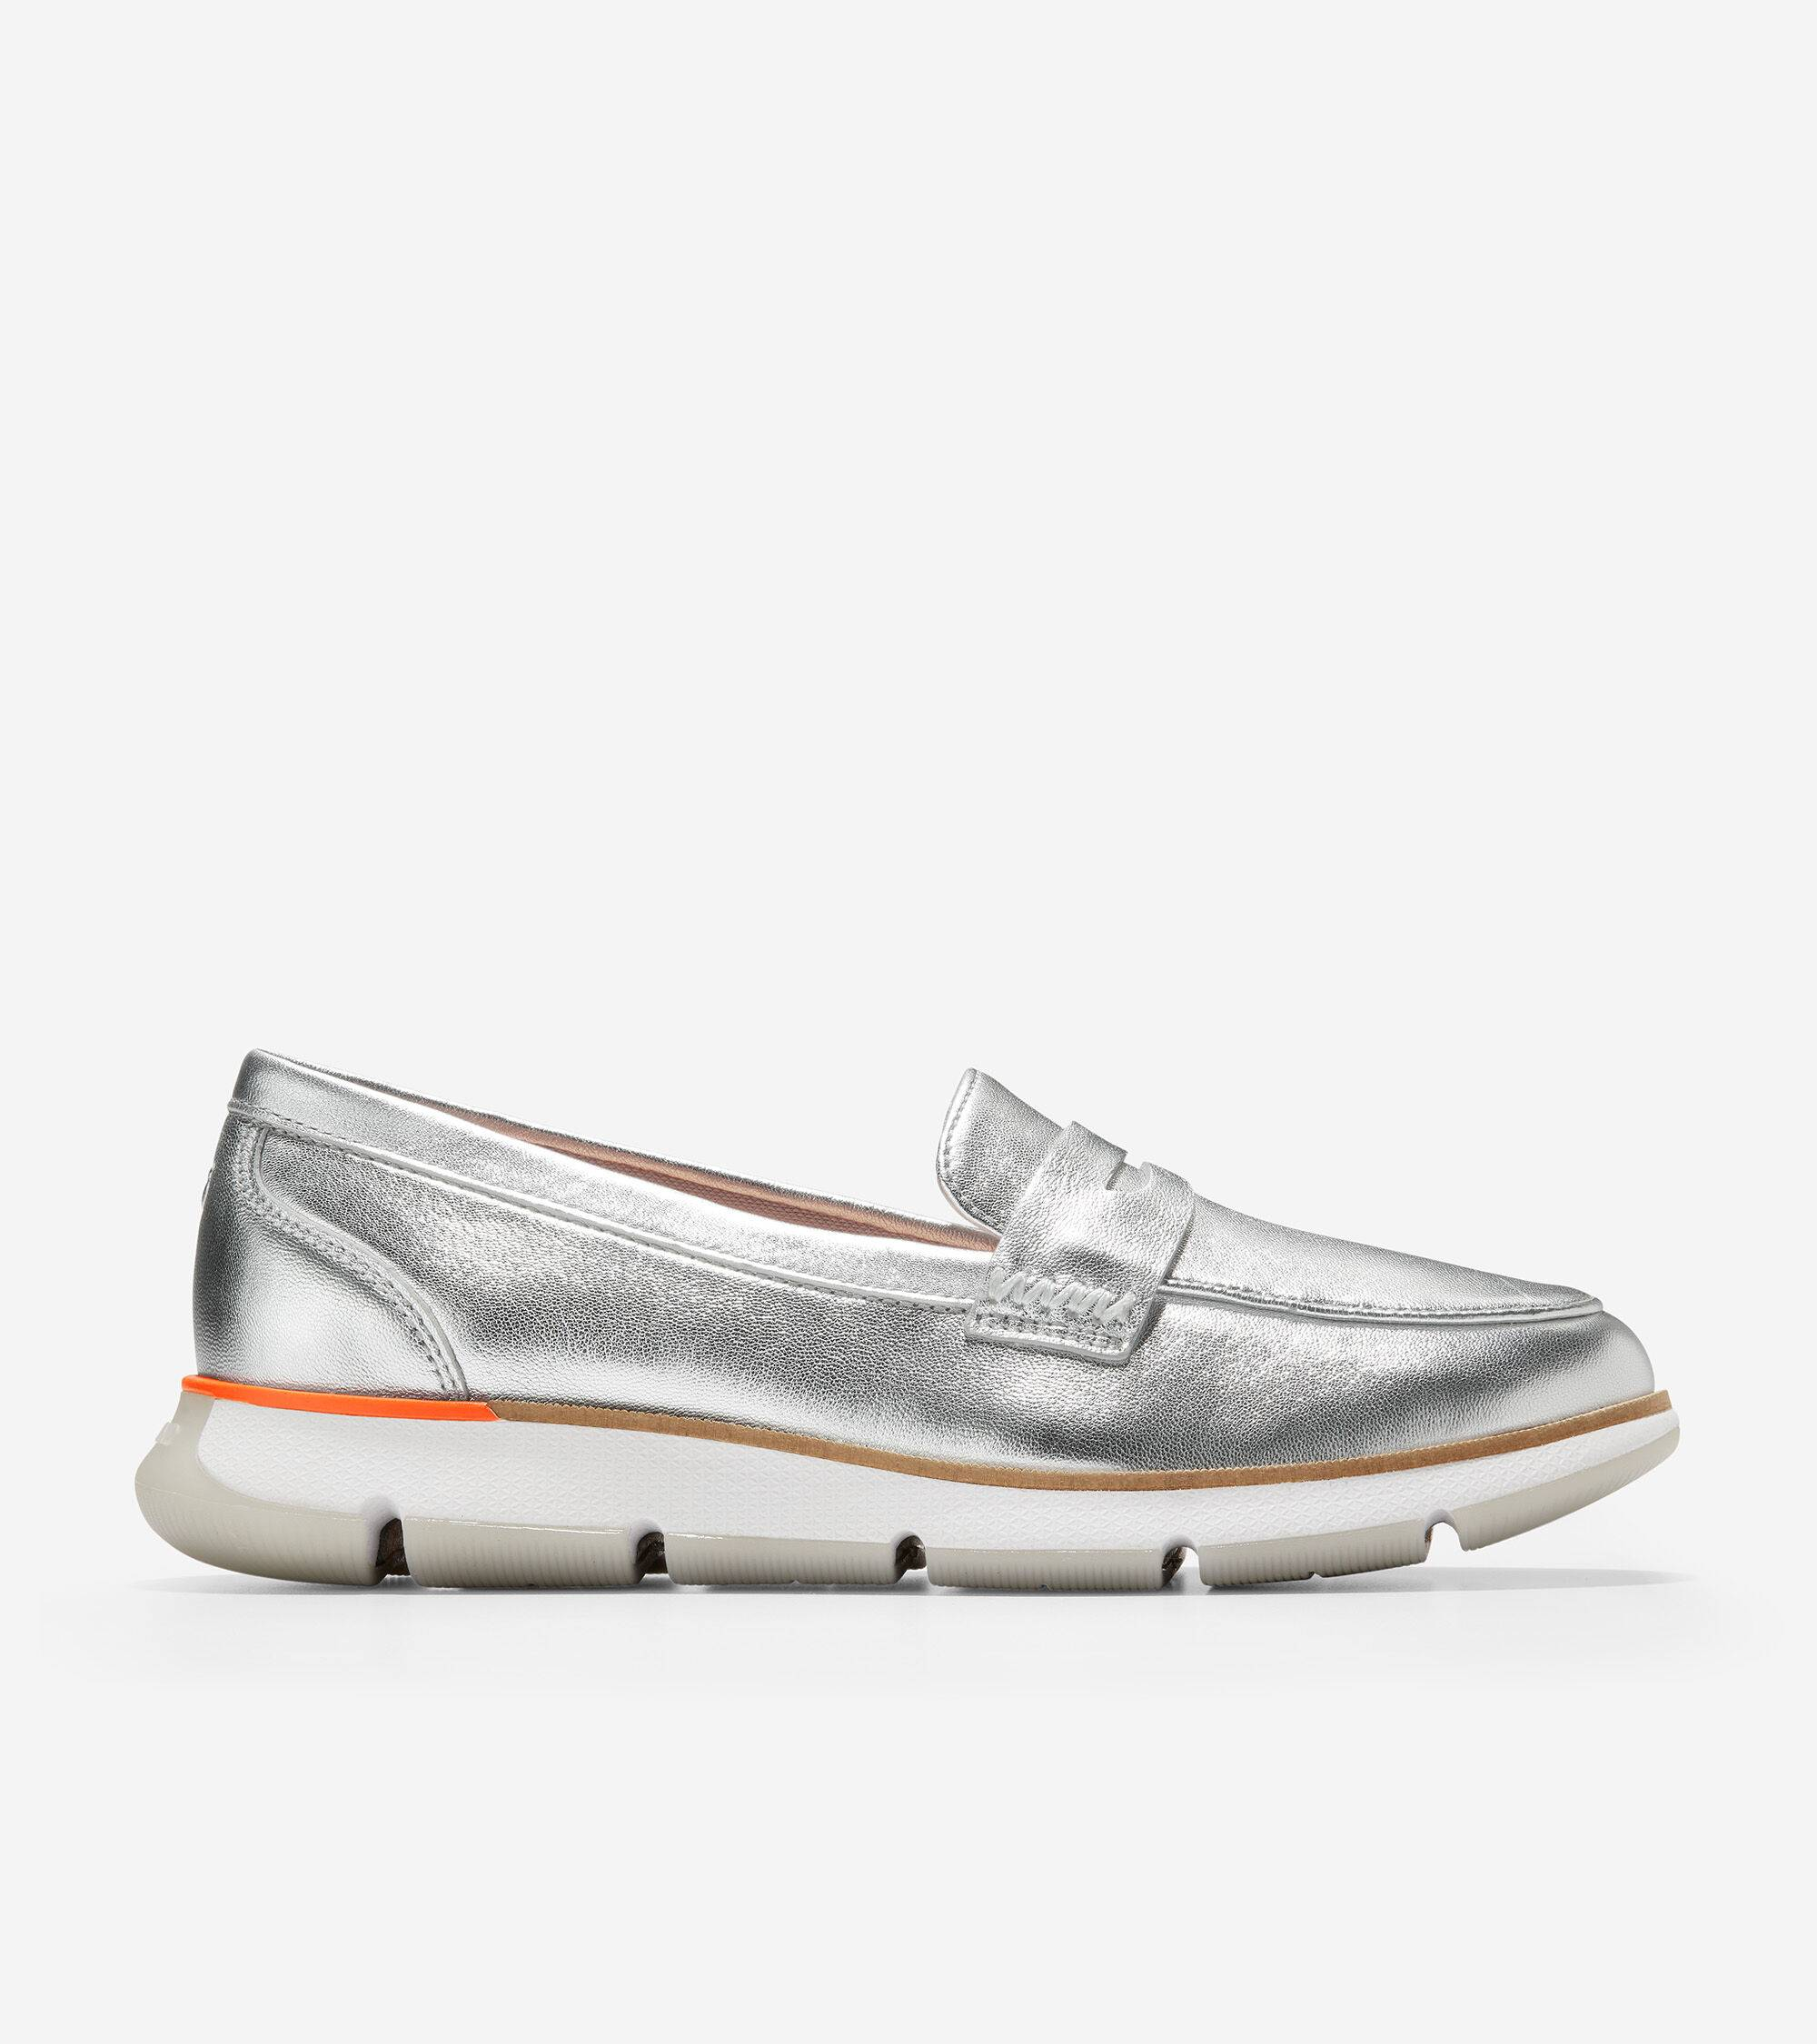 Cole Haan 4.ZERØGRAND Loafer - SILVER - Size: 6